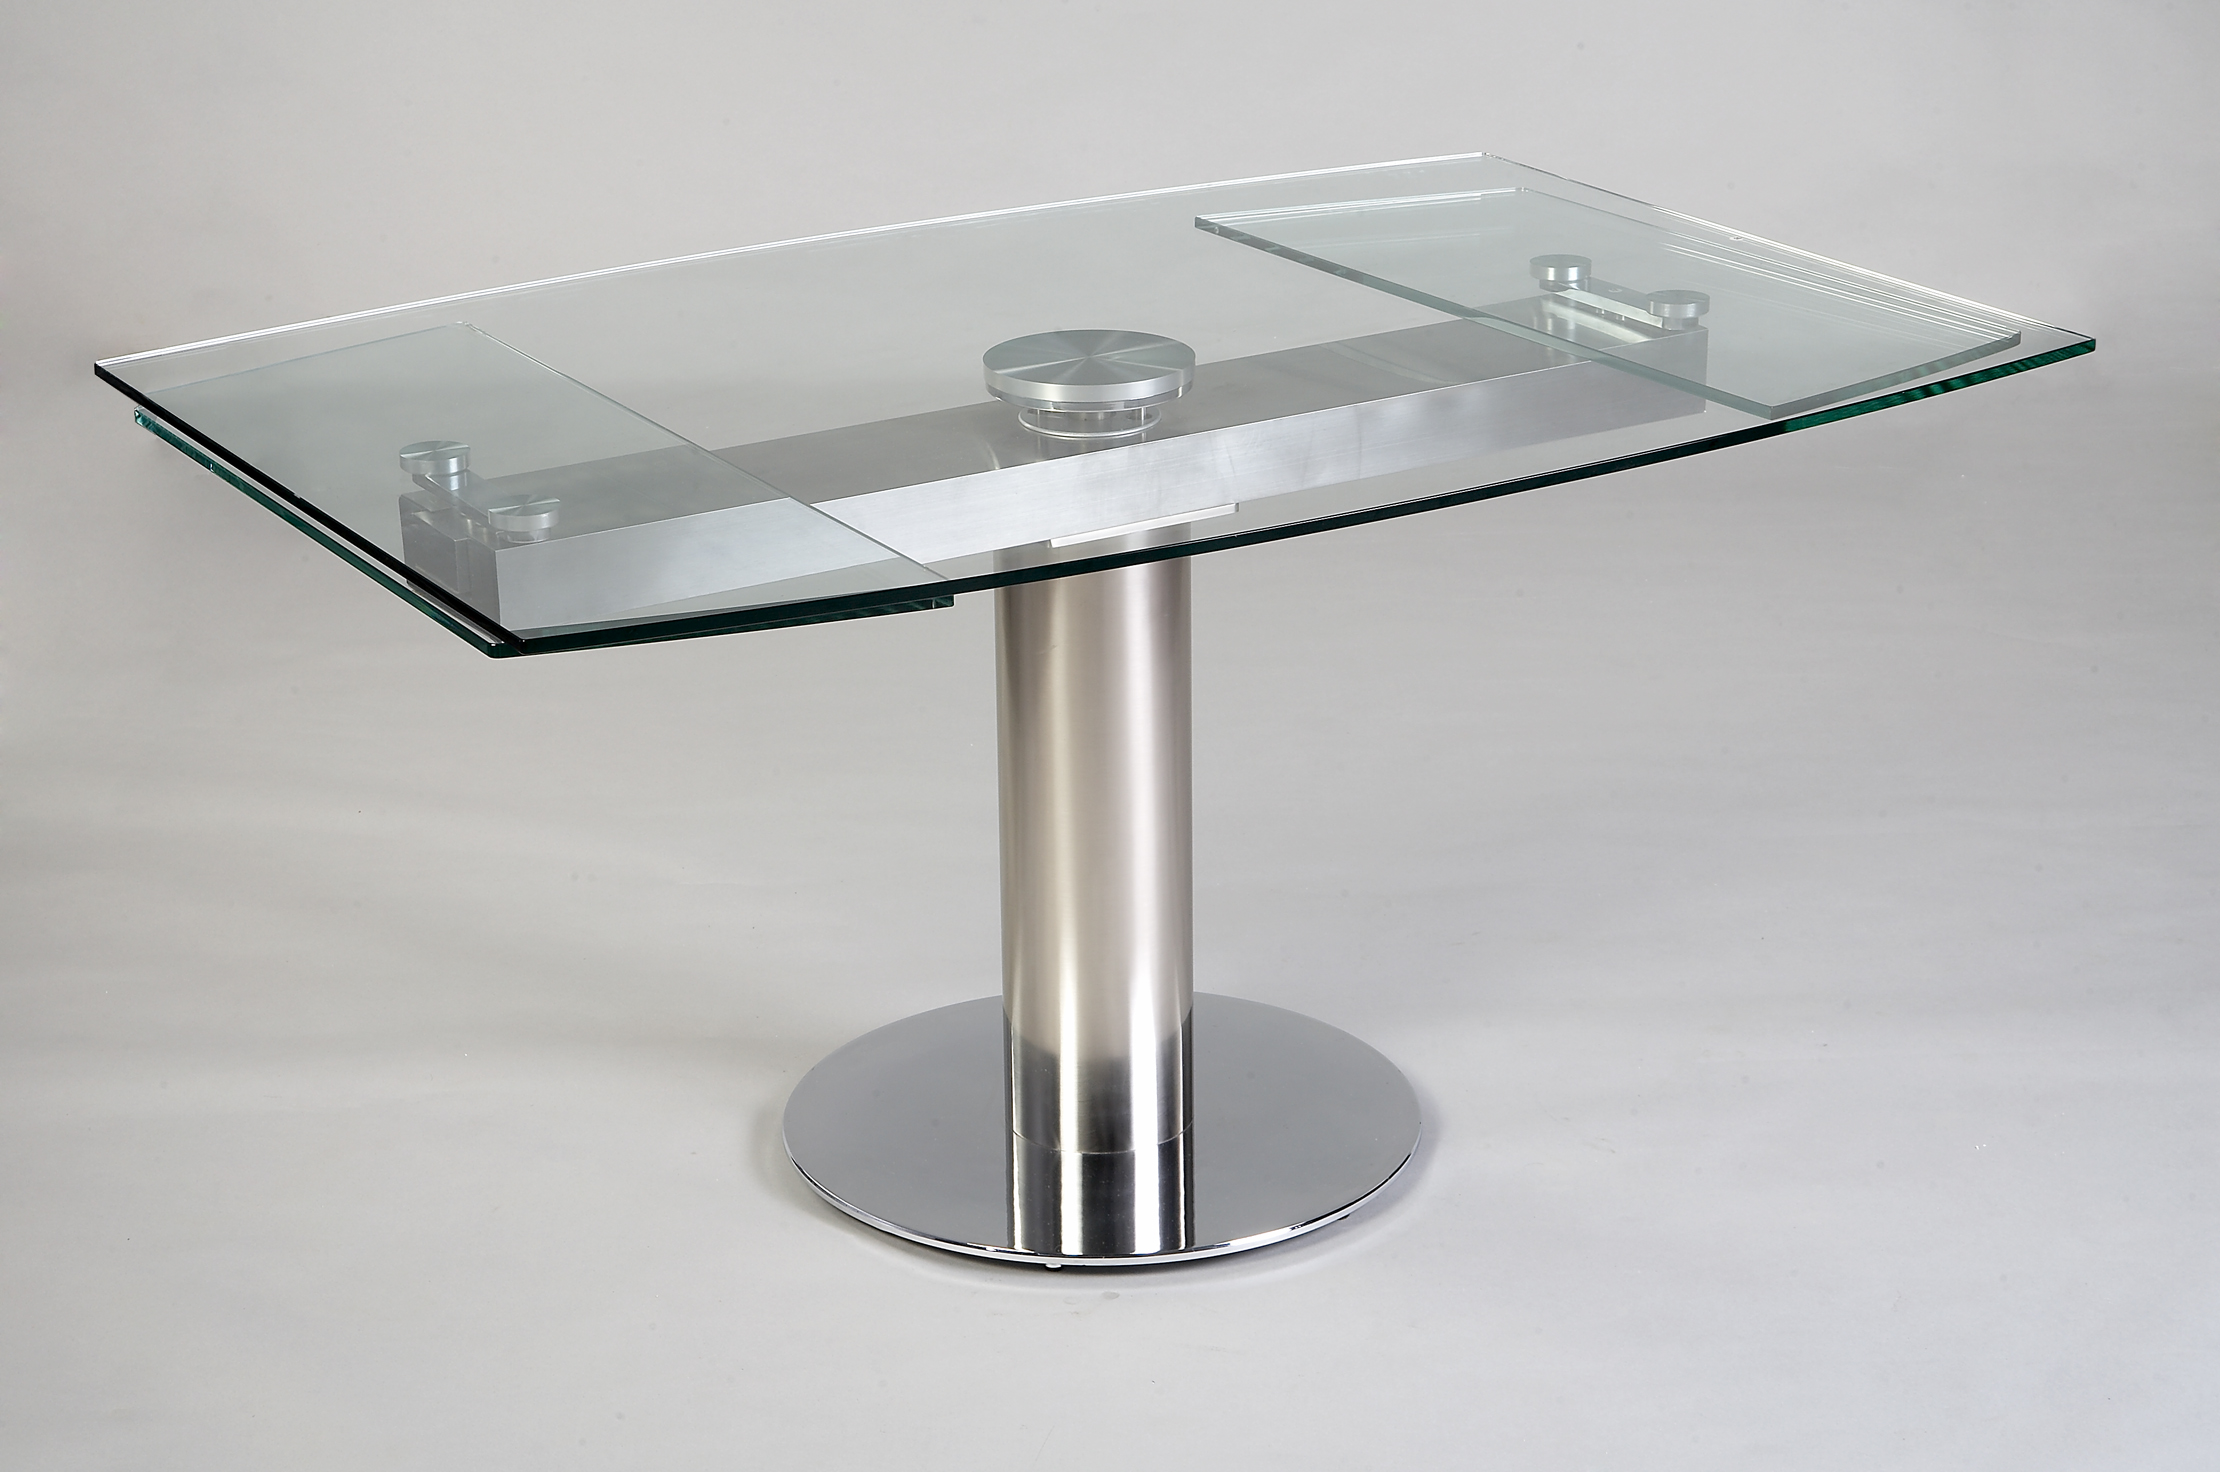 Table contemporaine en verre avec rallonge for Table en verre avec rallonge